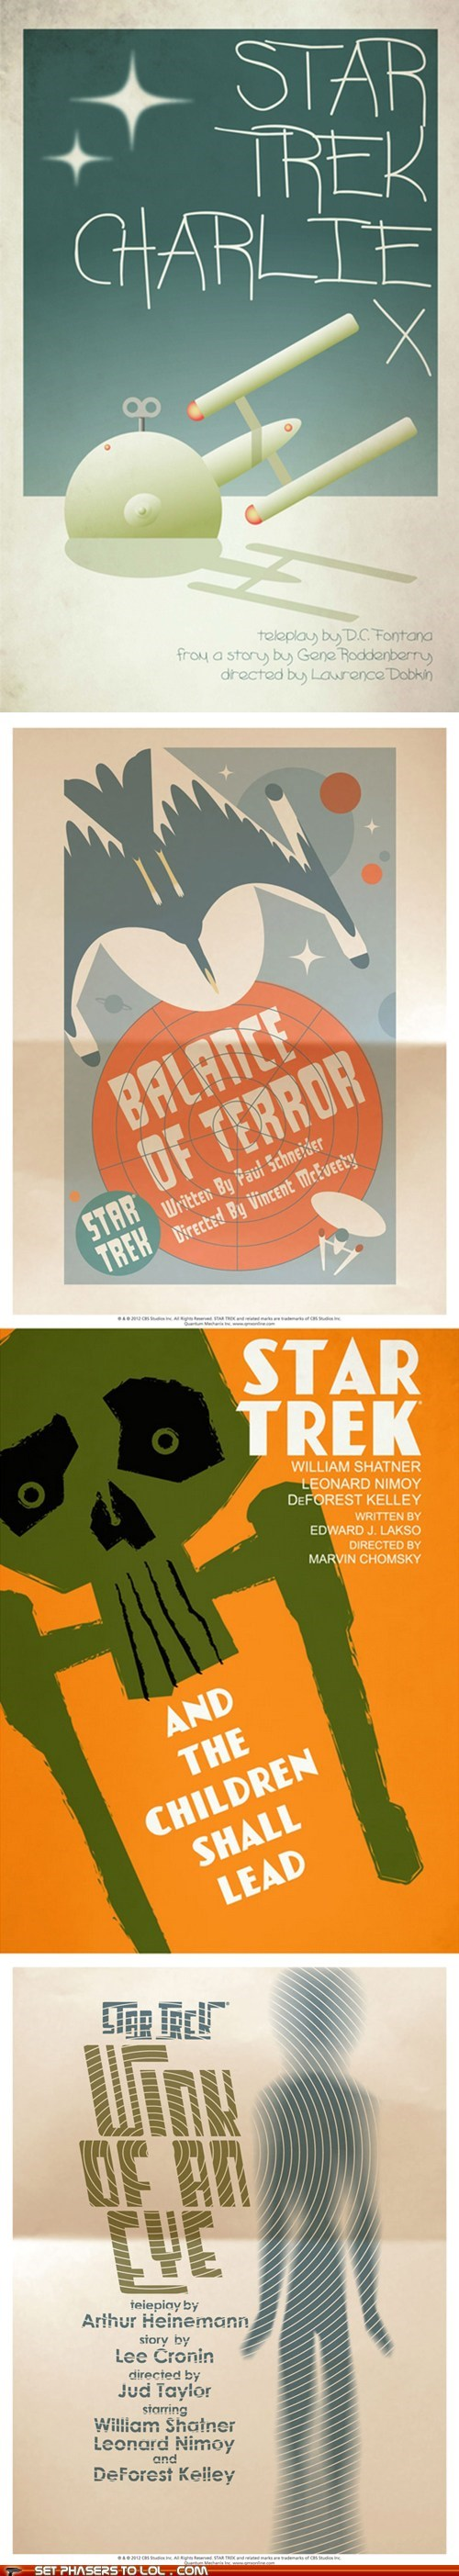 art charlie x DeForest Kelley episodes Leonard Nimoy posters retro Star Trek William Shatner - 6578210816